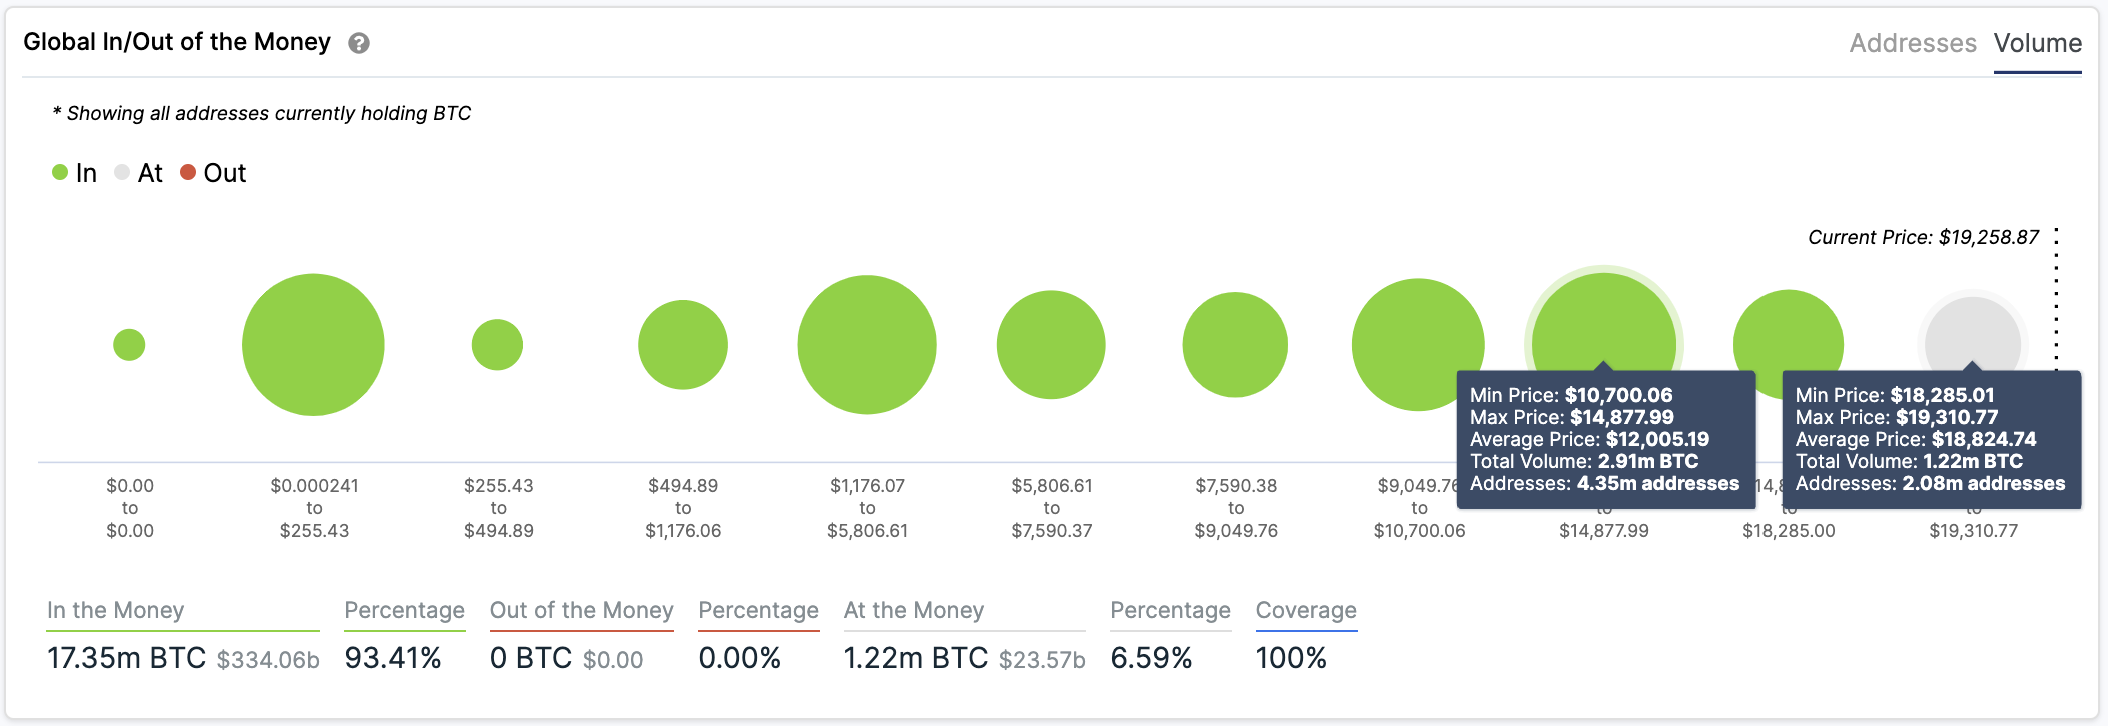 Bitcoin Global In/Out of the Money by IntoTheBlock